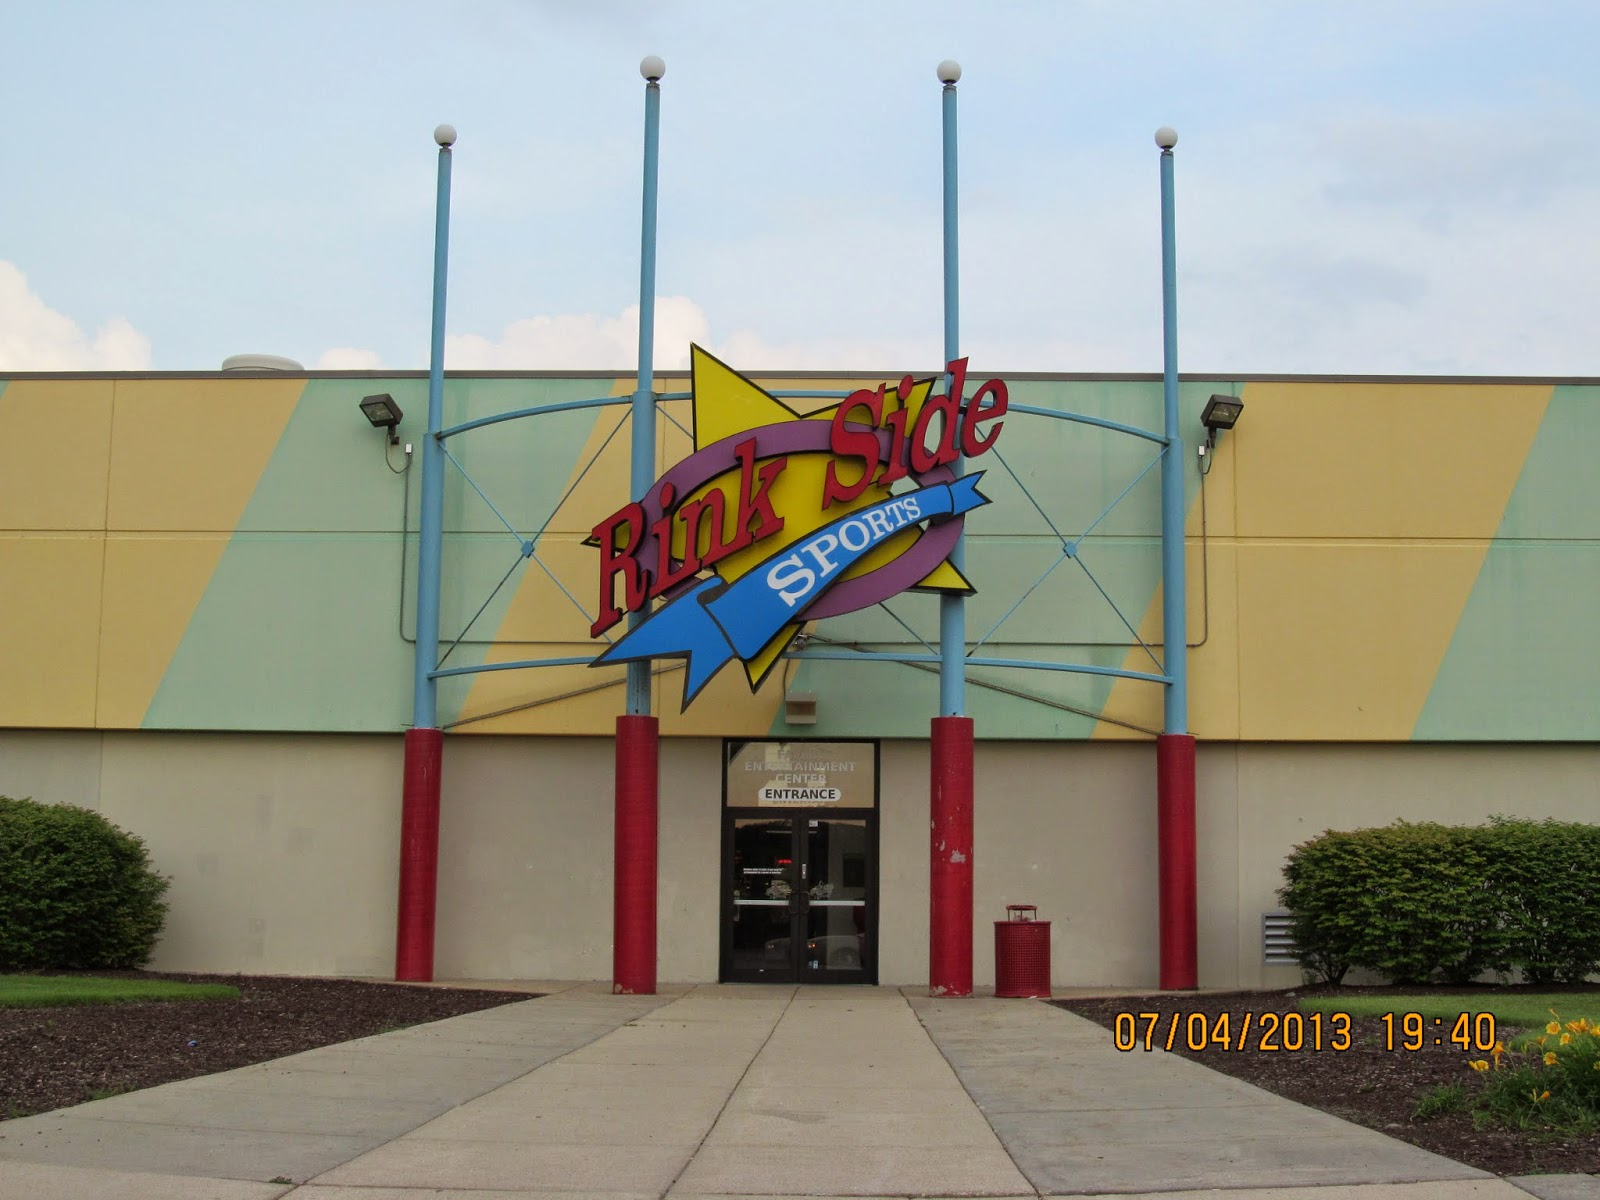 Located midway between Chicago and Milwaukee, Gurnee Mills is an indoor mall that has more than outlet and retail stores, popular restaurants and entertainment options for the family, with activities like a mirror maze, inflatables and a movie theater.